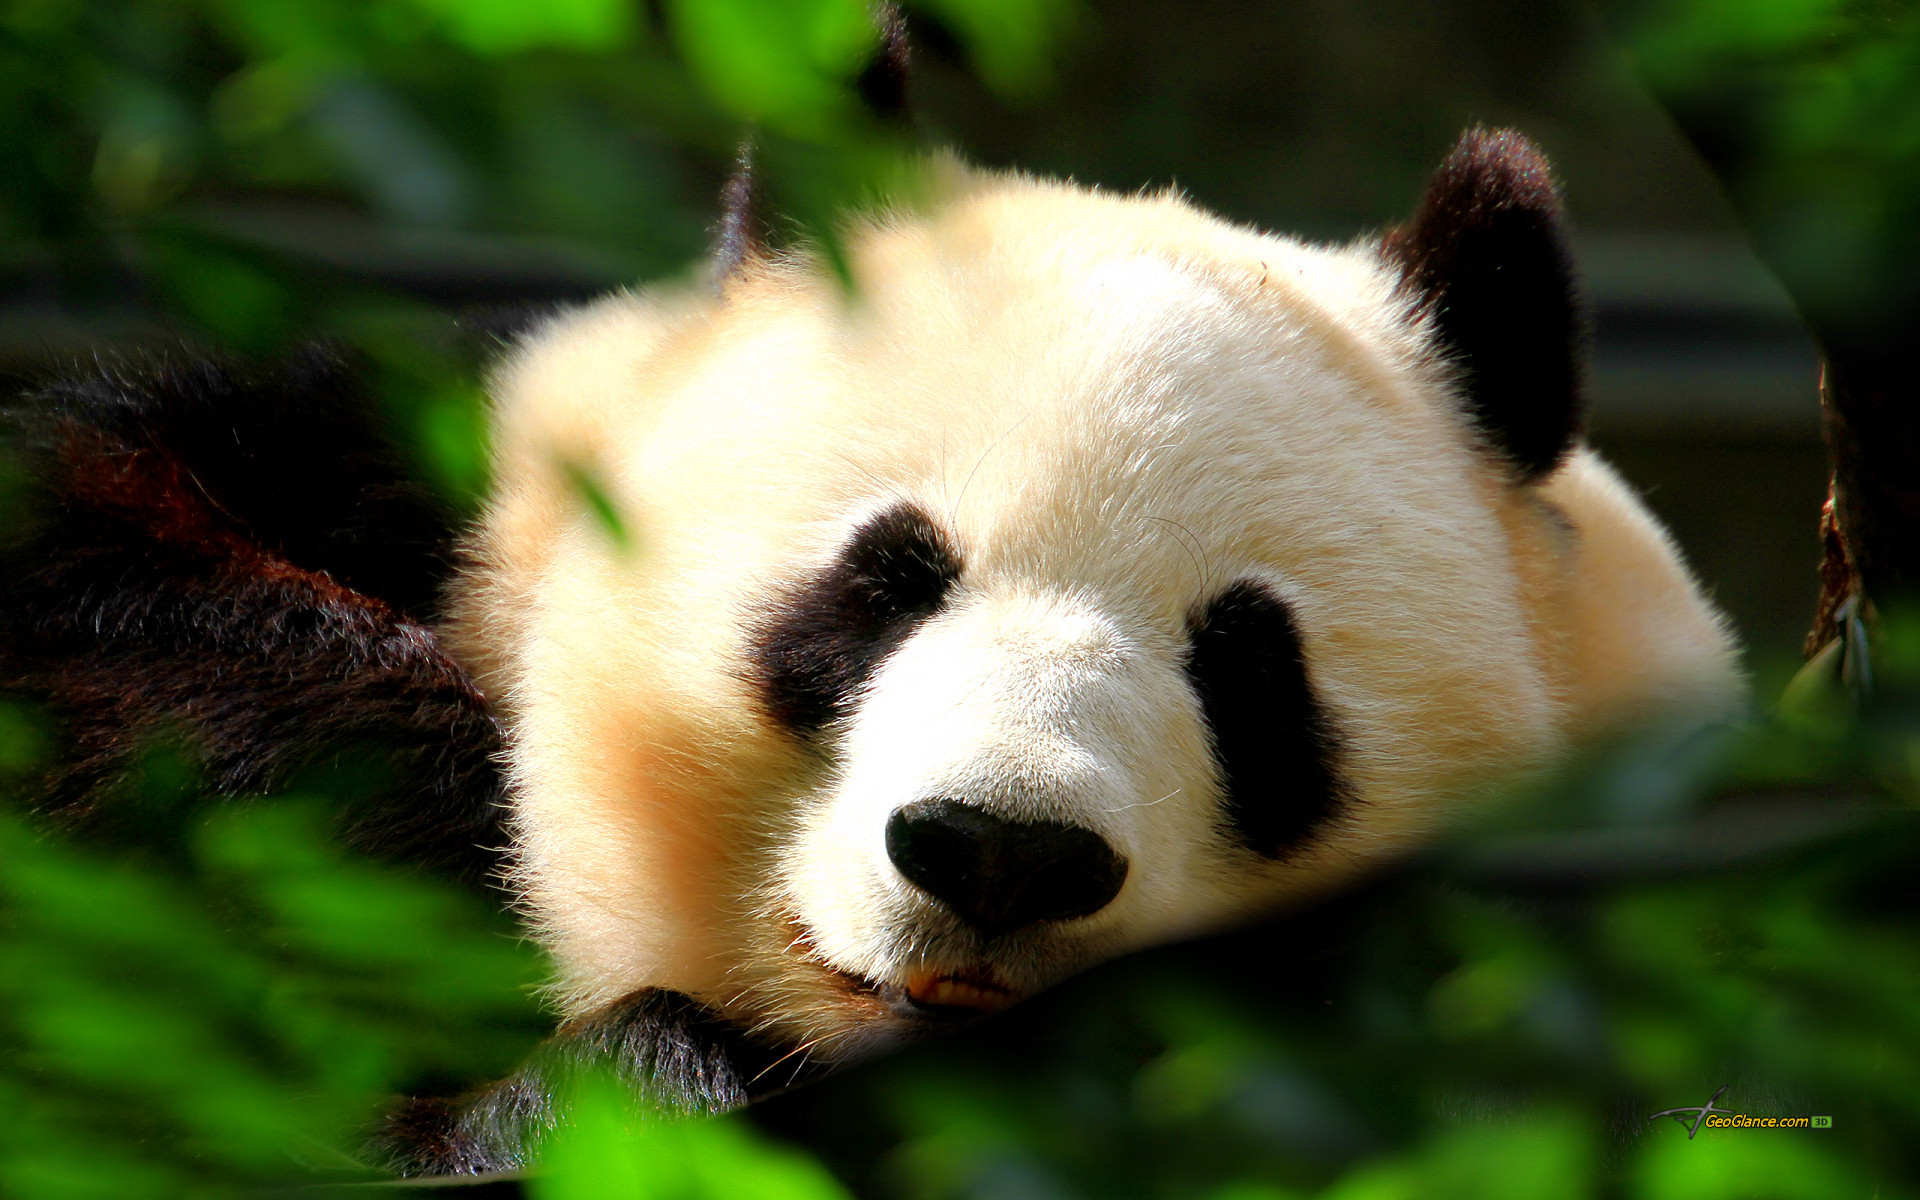 1920x1200 Collection of Baby Panda Wallpapers on HDWallpapers Cute Baby Panda Wallpapers Wallpapers)